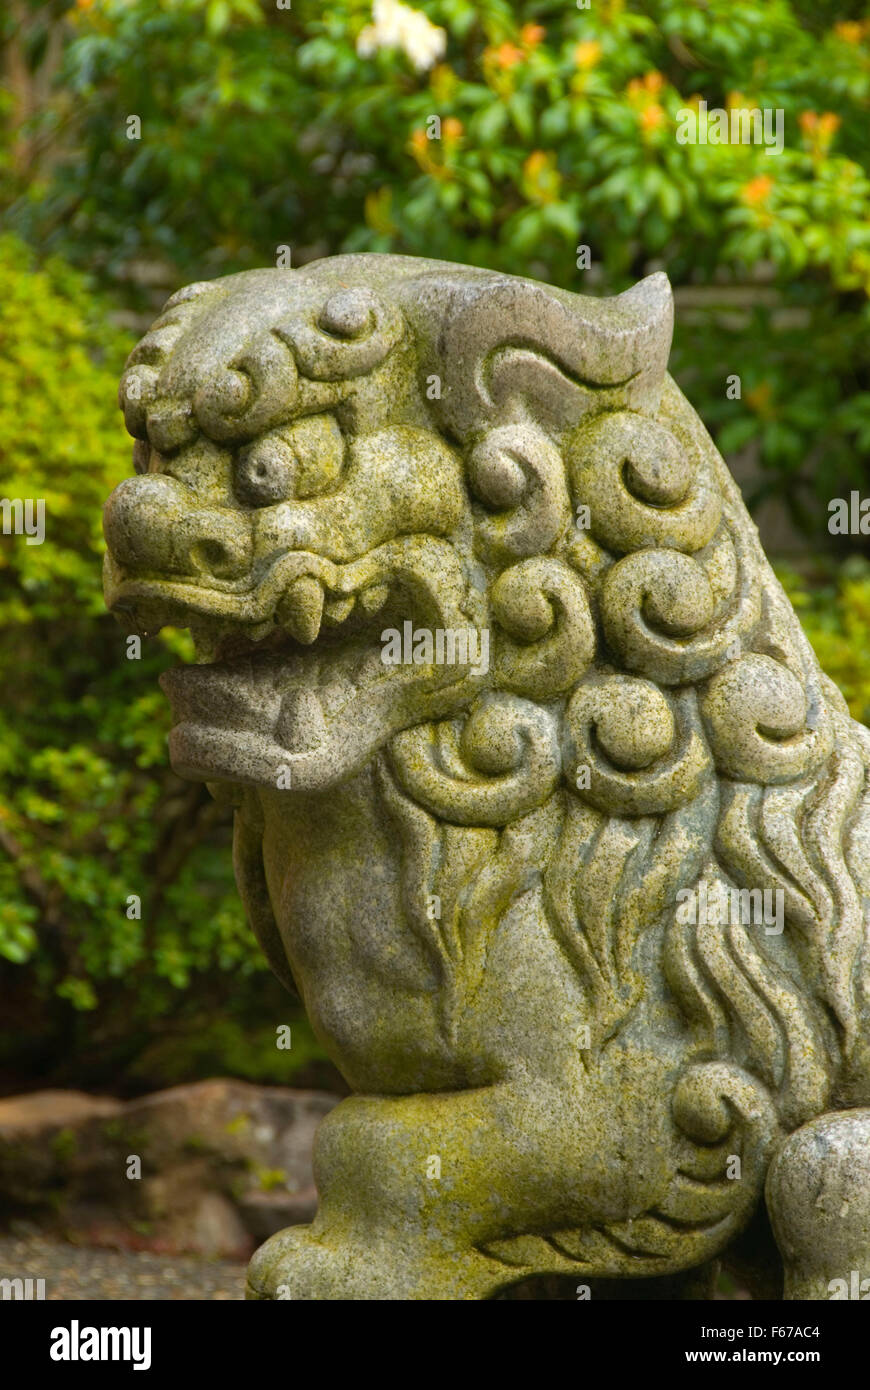 Lion/dog Statue, Portland Japanese Garden, Washington Park, Portland, Oregon